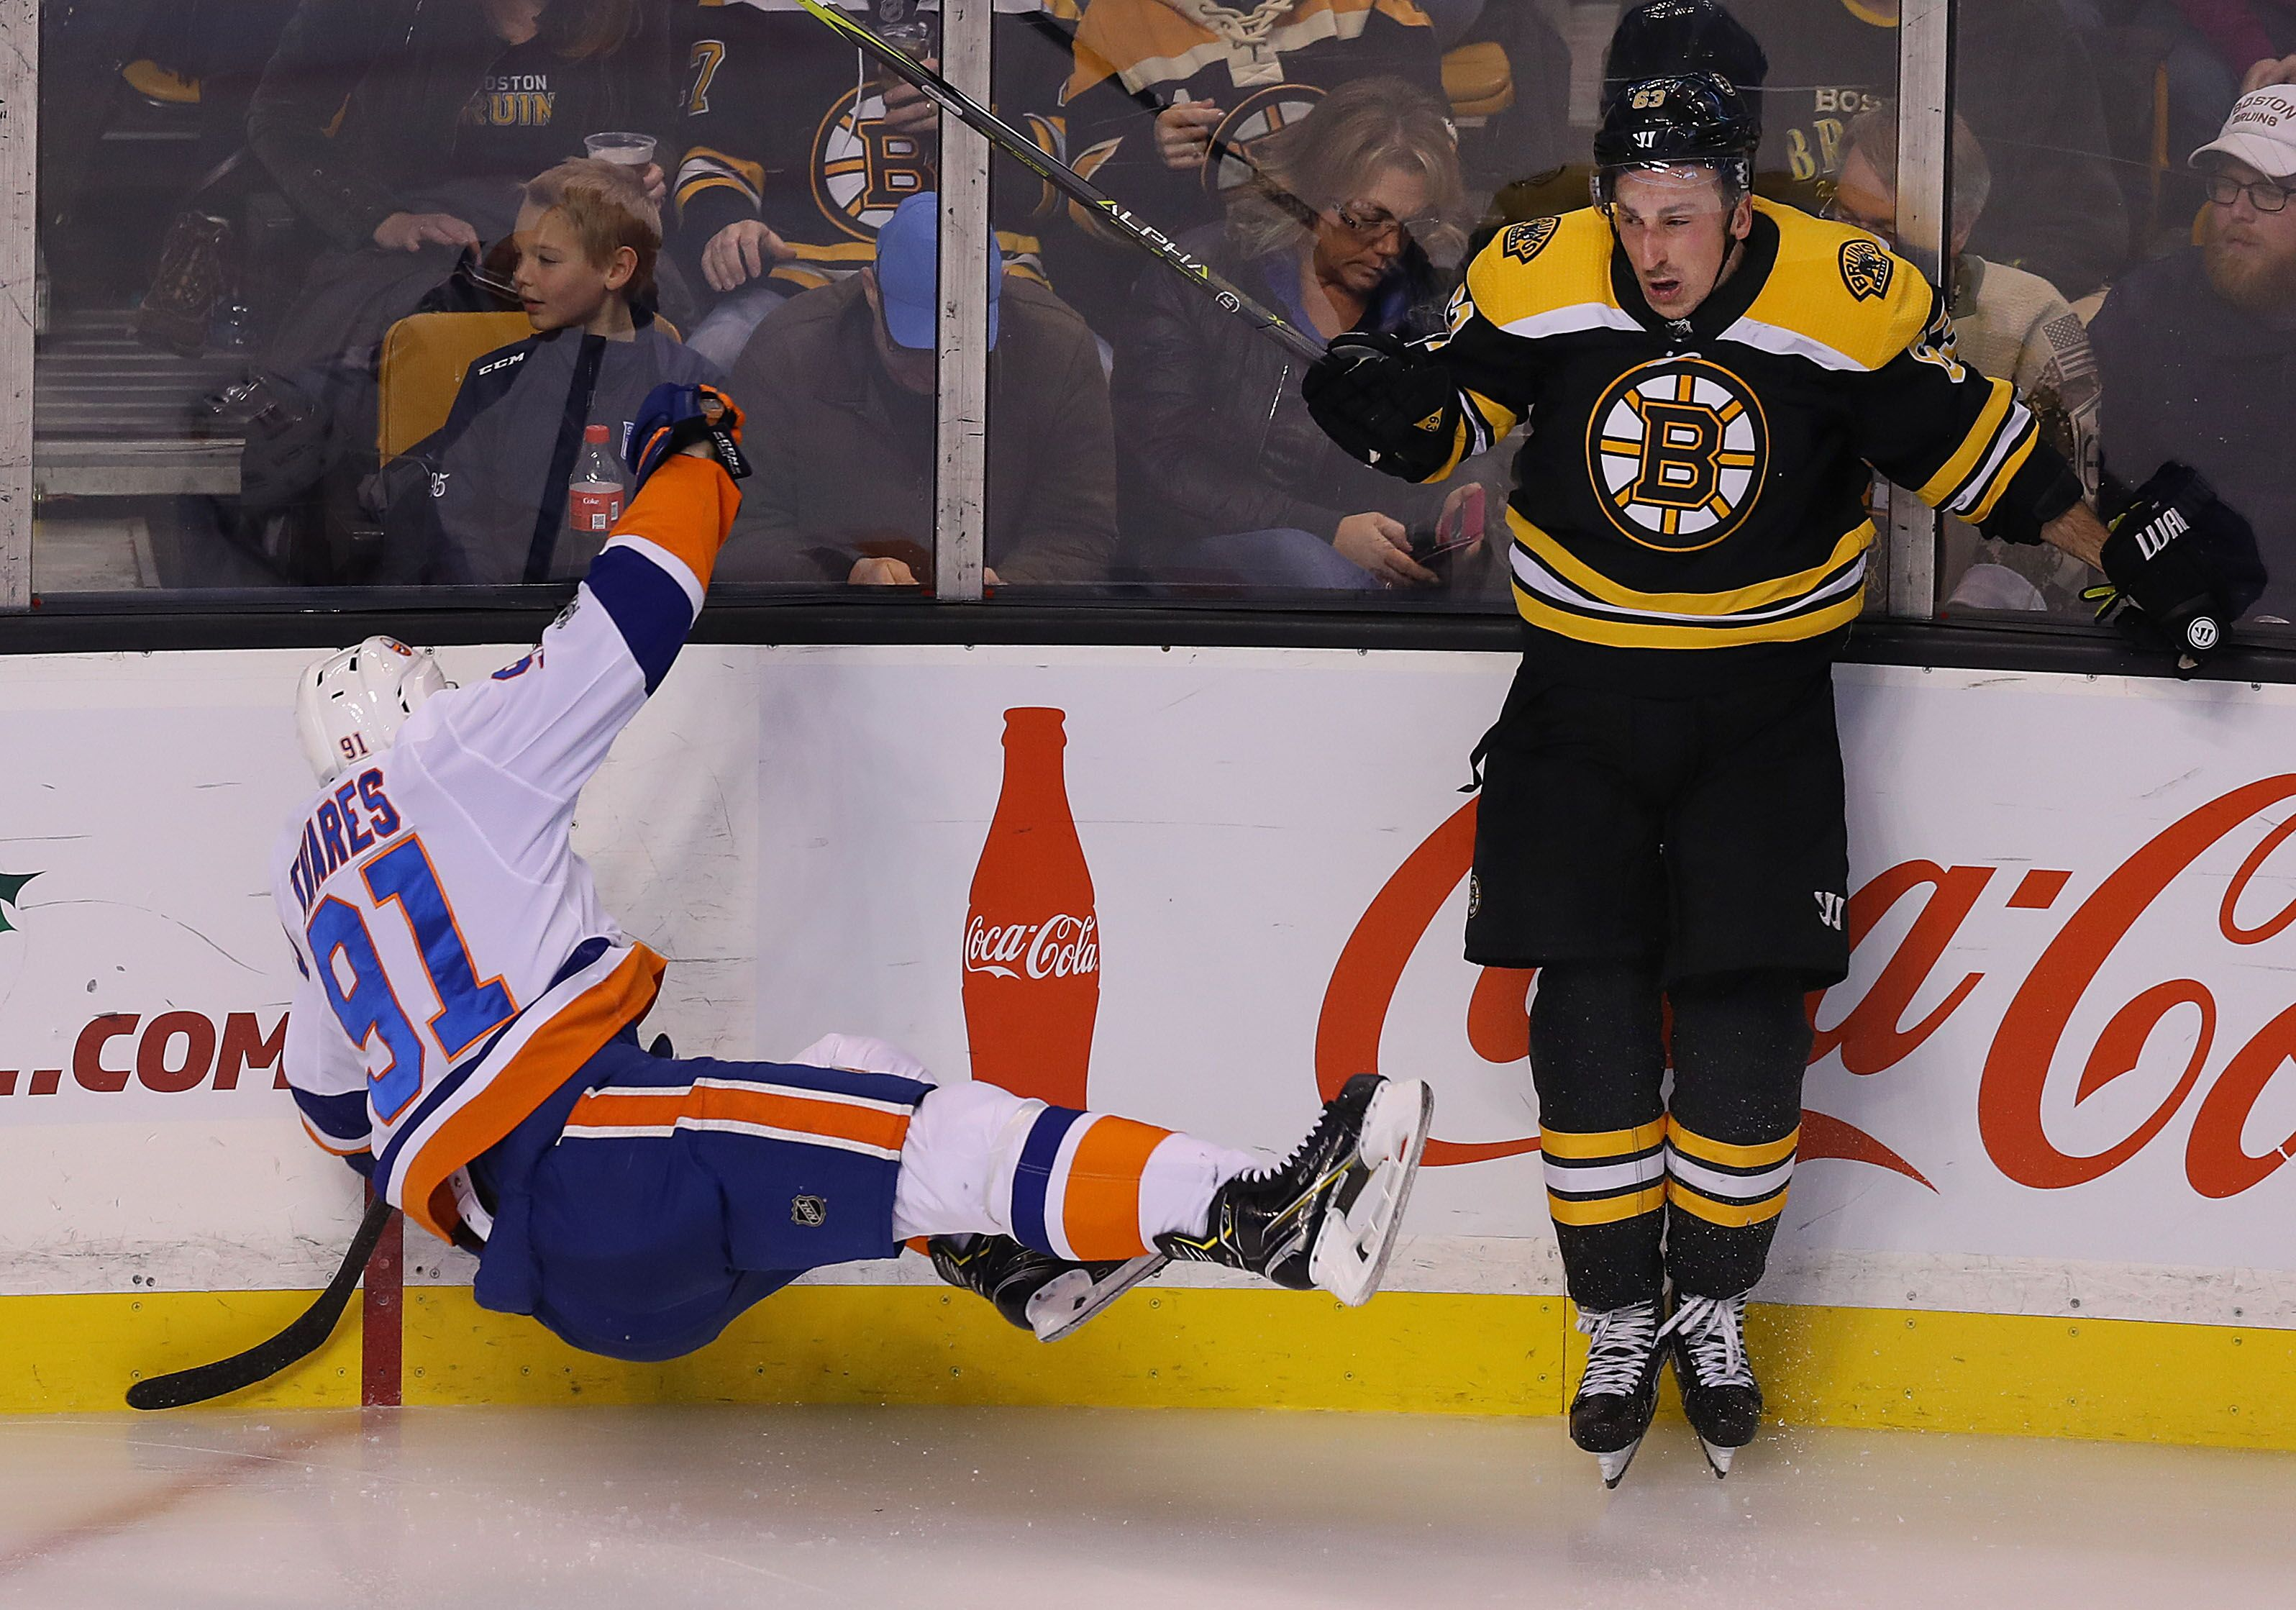 890476466-new-york-islanders-vs-boston-bruins-at-td-garden.jpg